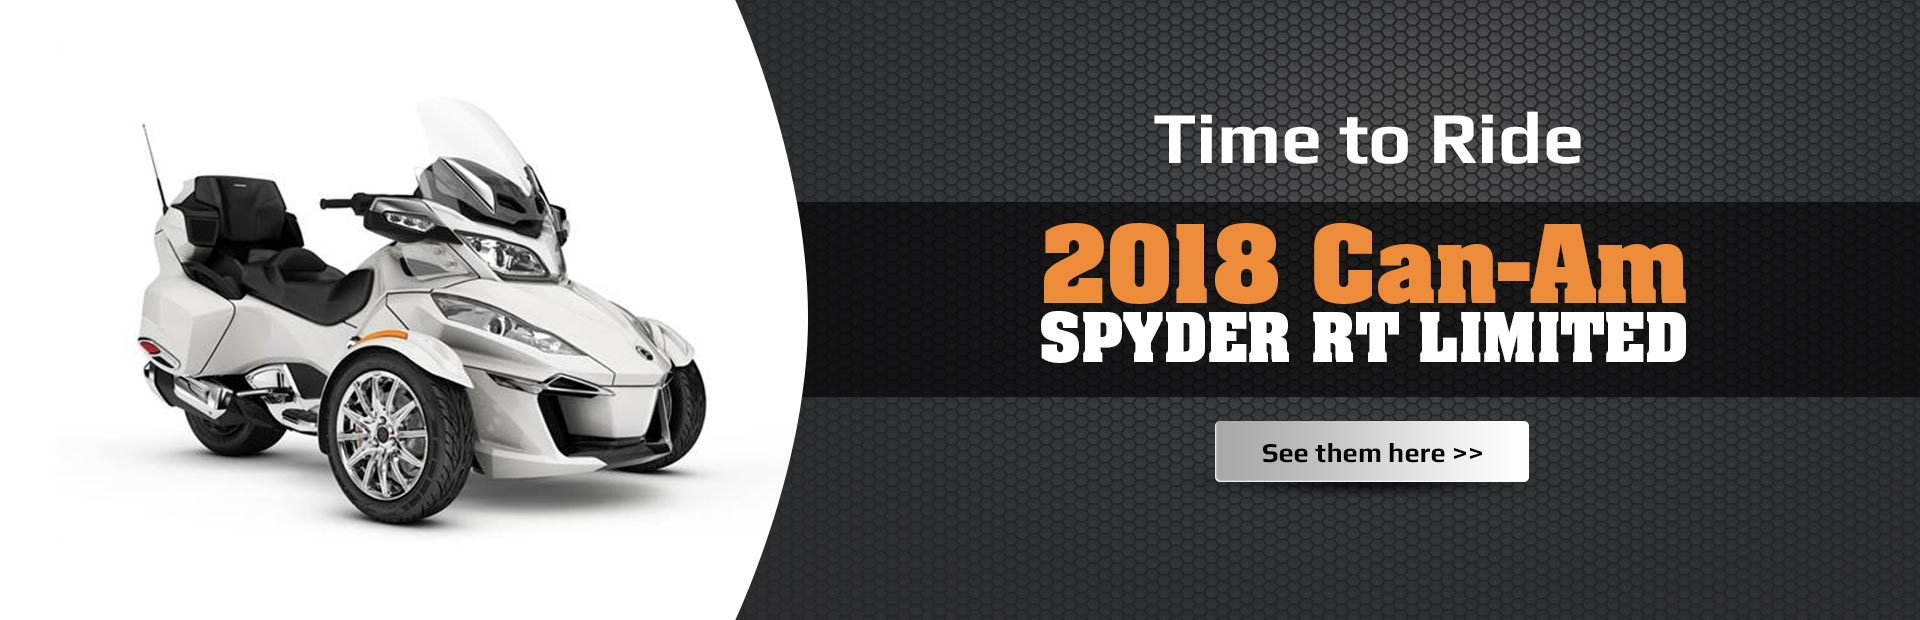 2018 Can-Am Spyder RT Limited: Click here to view the models.